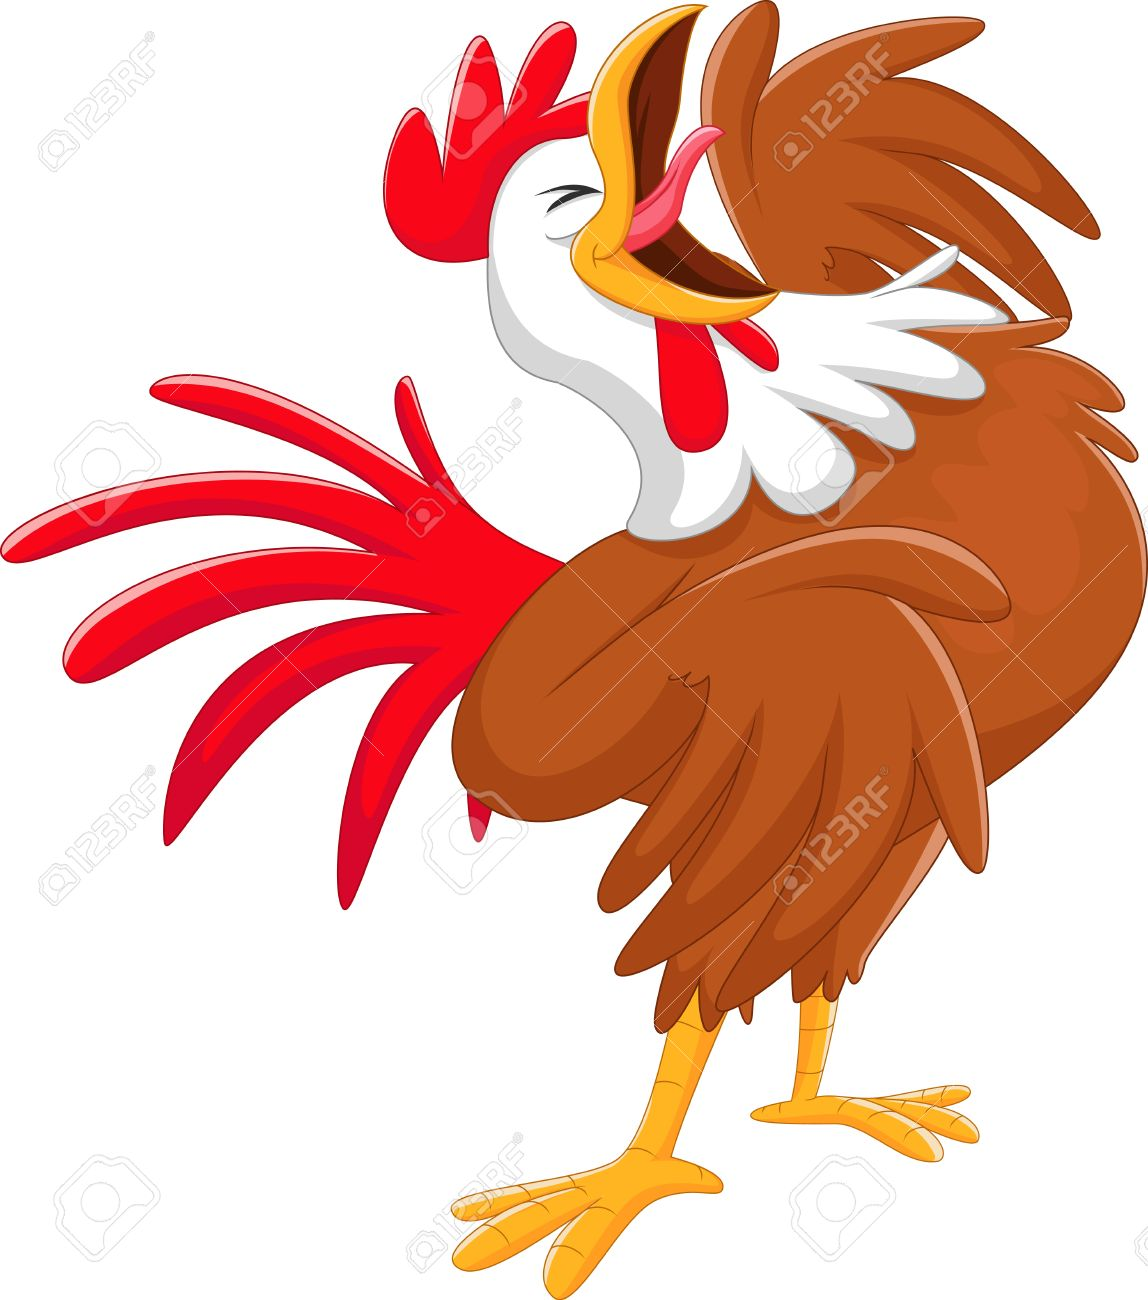 happy cartoon rooster crowing royalty free cliparts vectors and